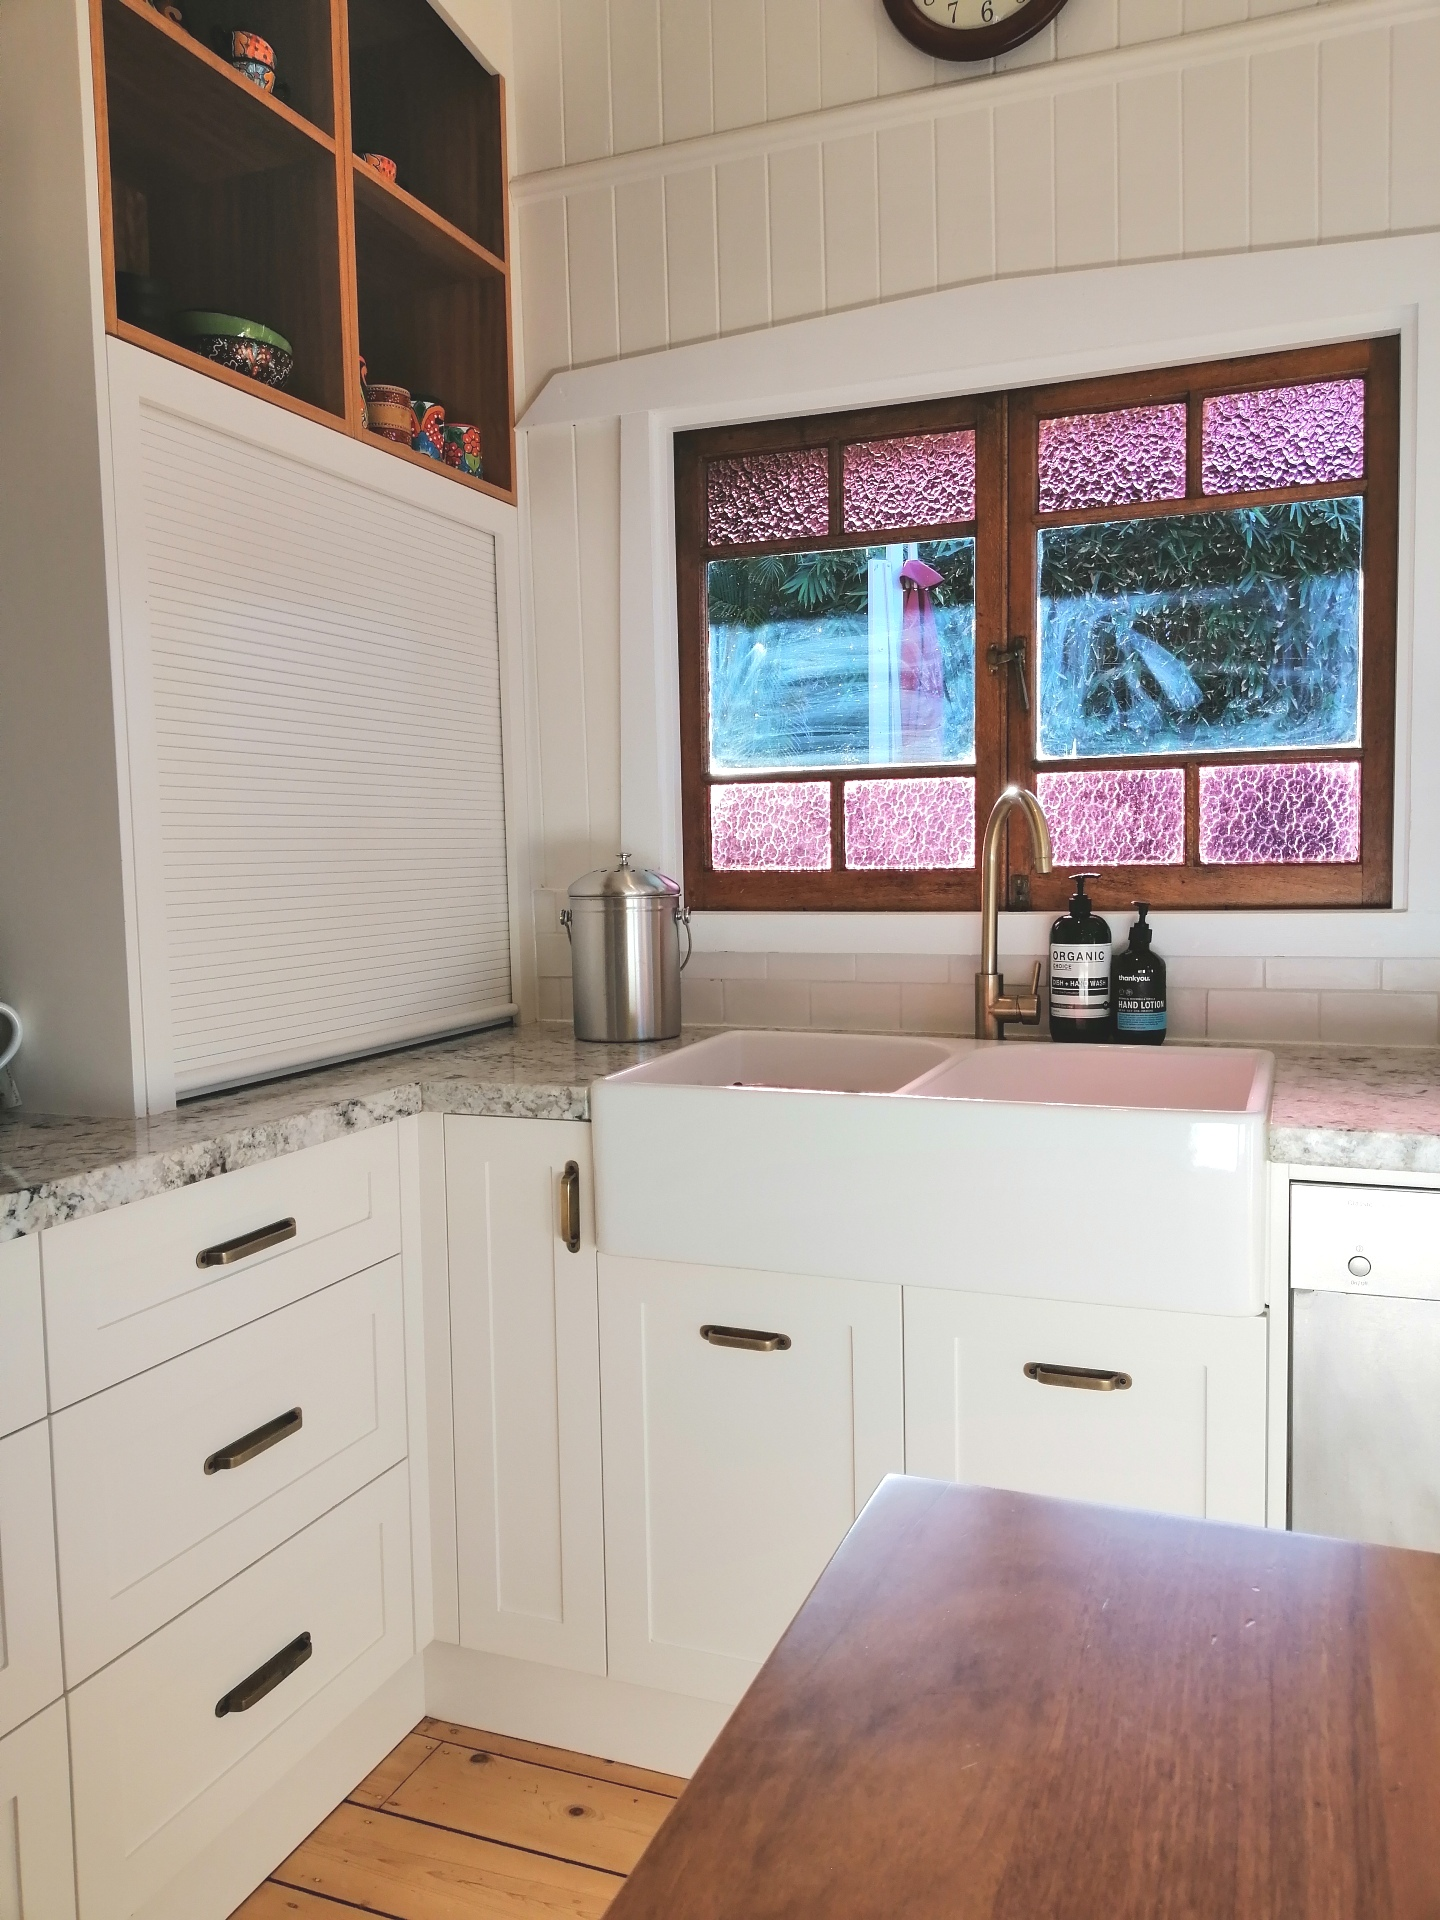 Ashgrove Shaker with Appliance Roller Shutter Farmers Sink Blackbutt Feature Bookshelf